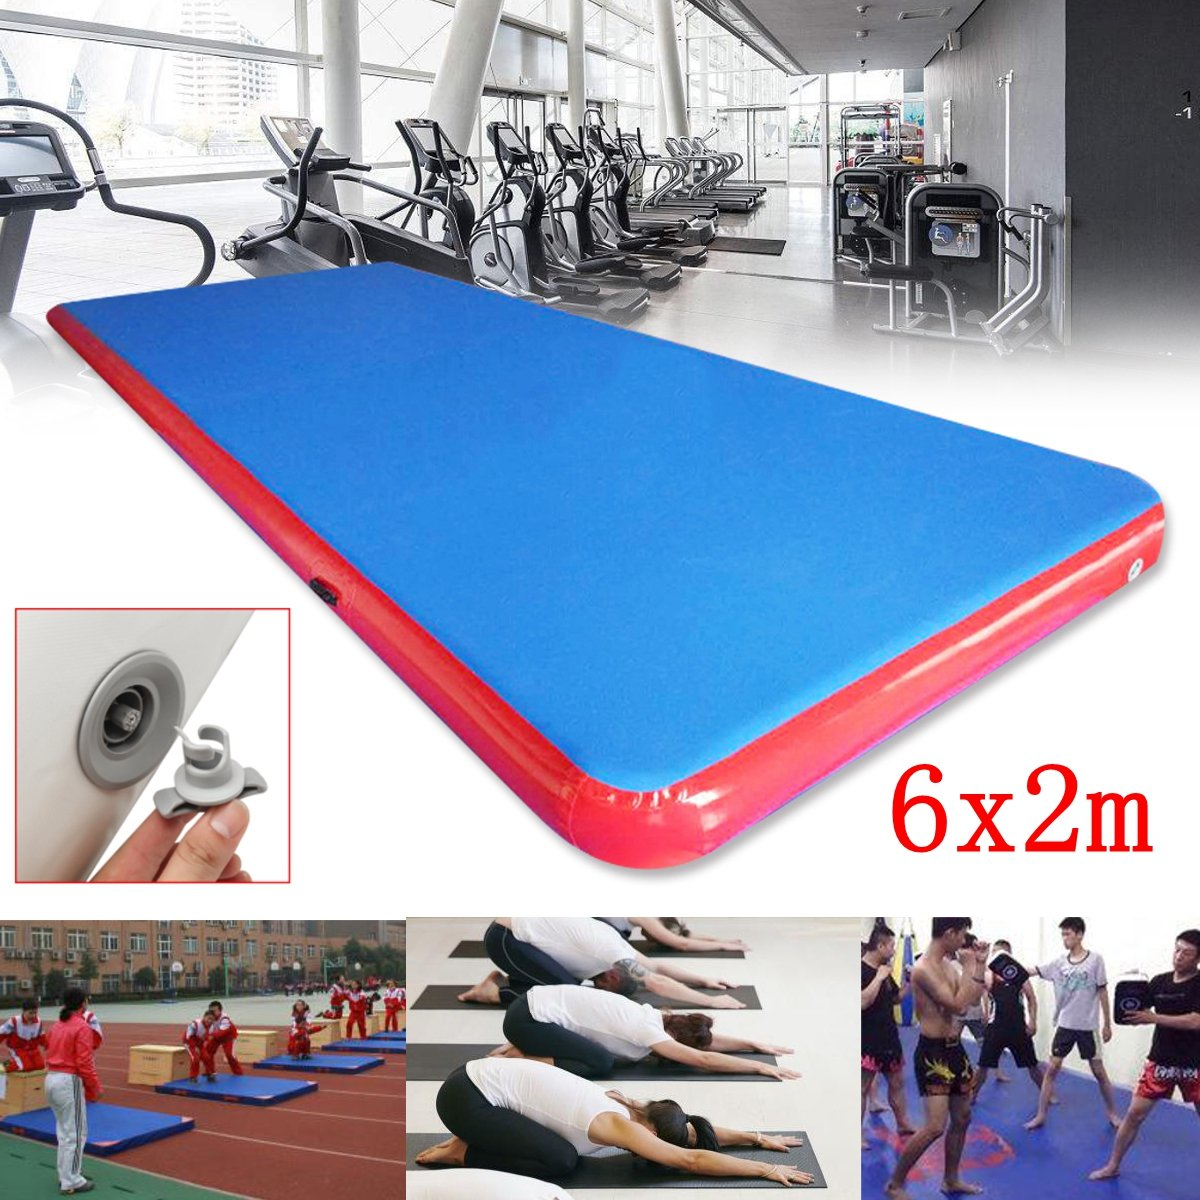 Winnerbe 236x78x7.87inch Inflatable Air Track Tumbling Gymnastics Mat Fitness Training Yoga Pad